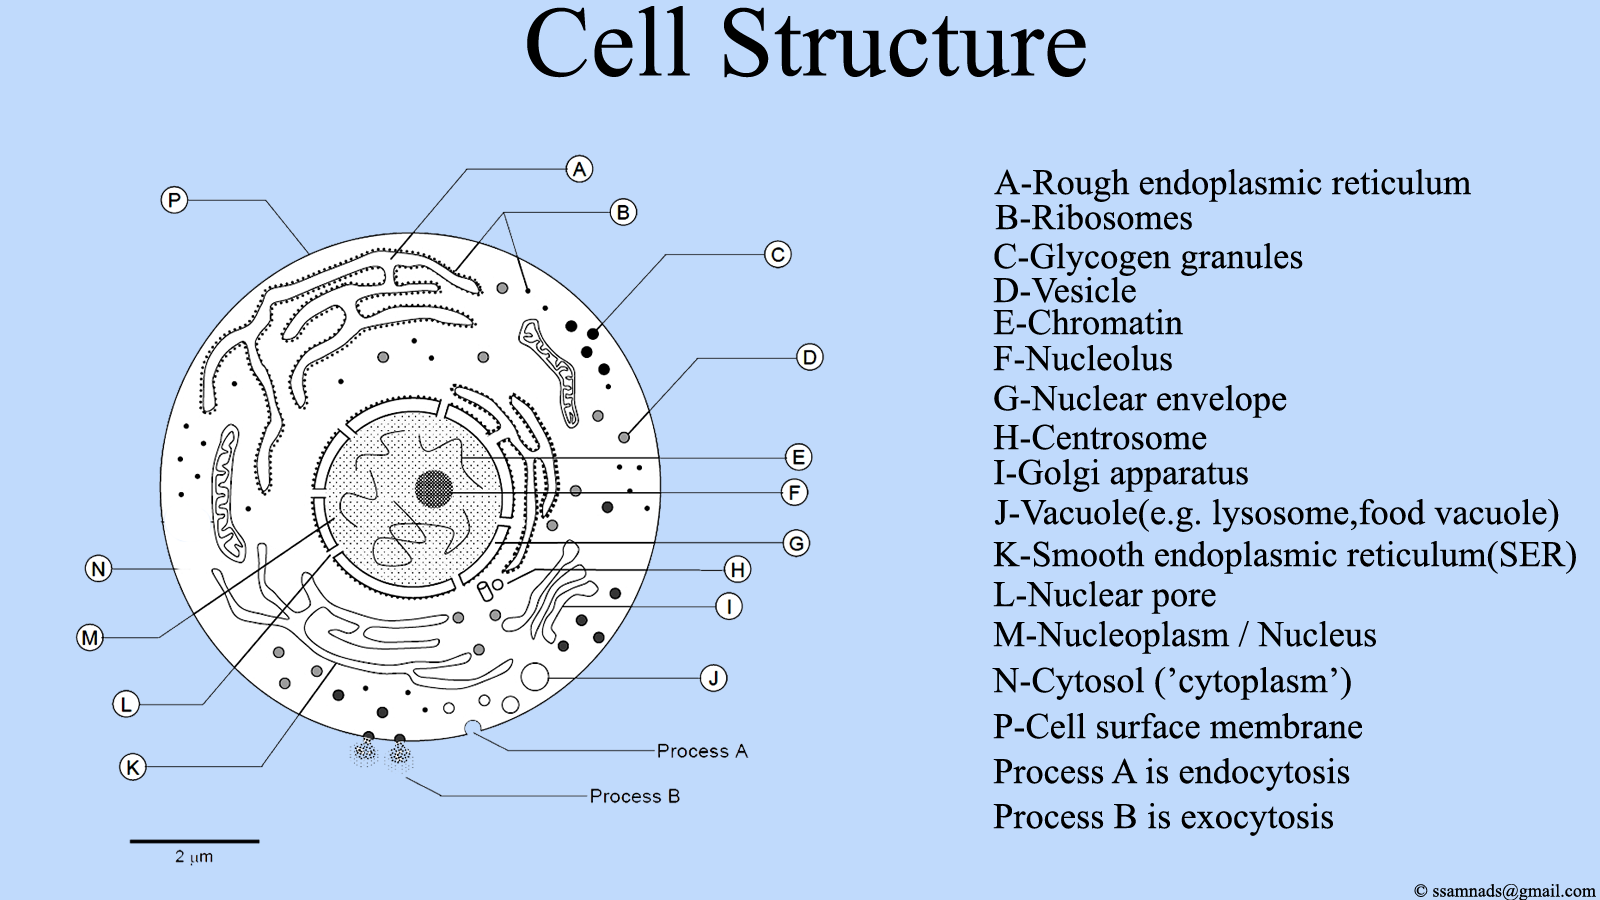 file cell structure cell diagram png wikimedia commons rh commons wikimedia org diagram of human cell structure diagram of red blood cell structure